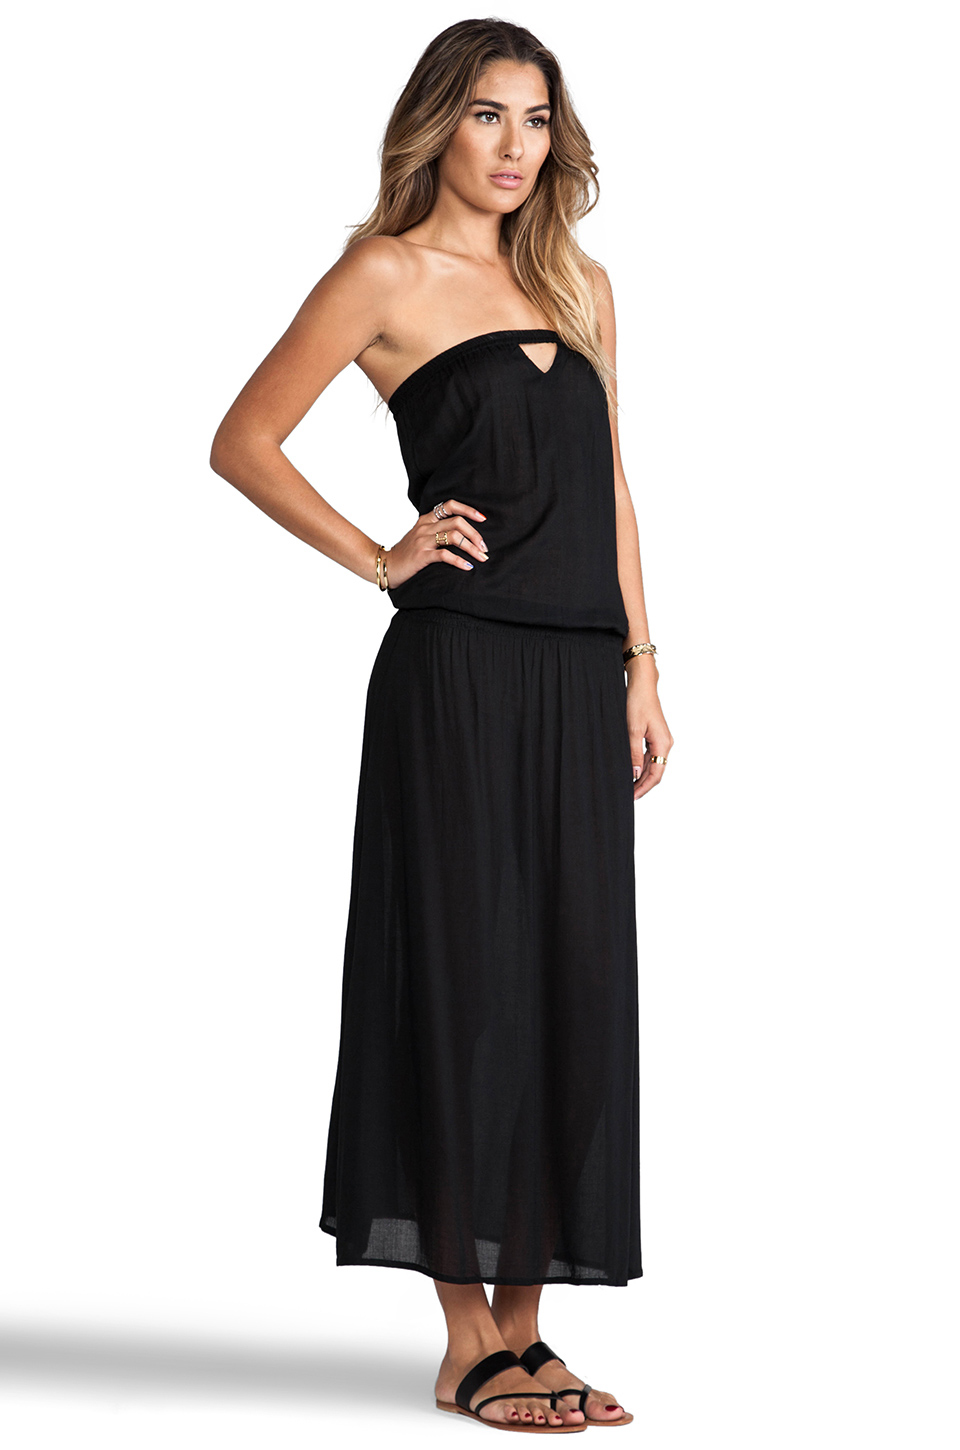 Tiare Hawaii Ibiza Dress in Black